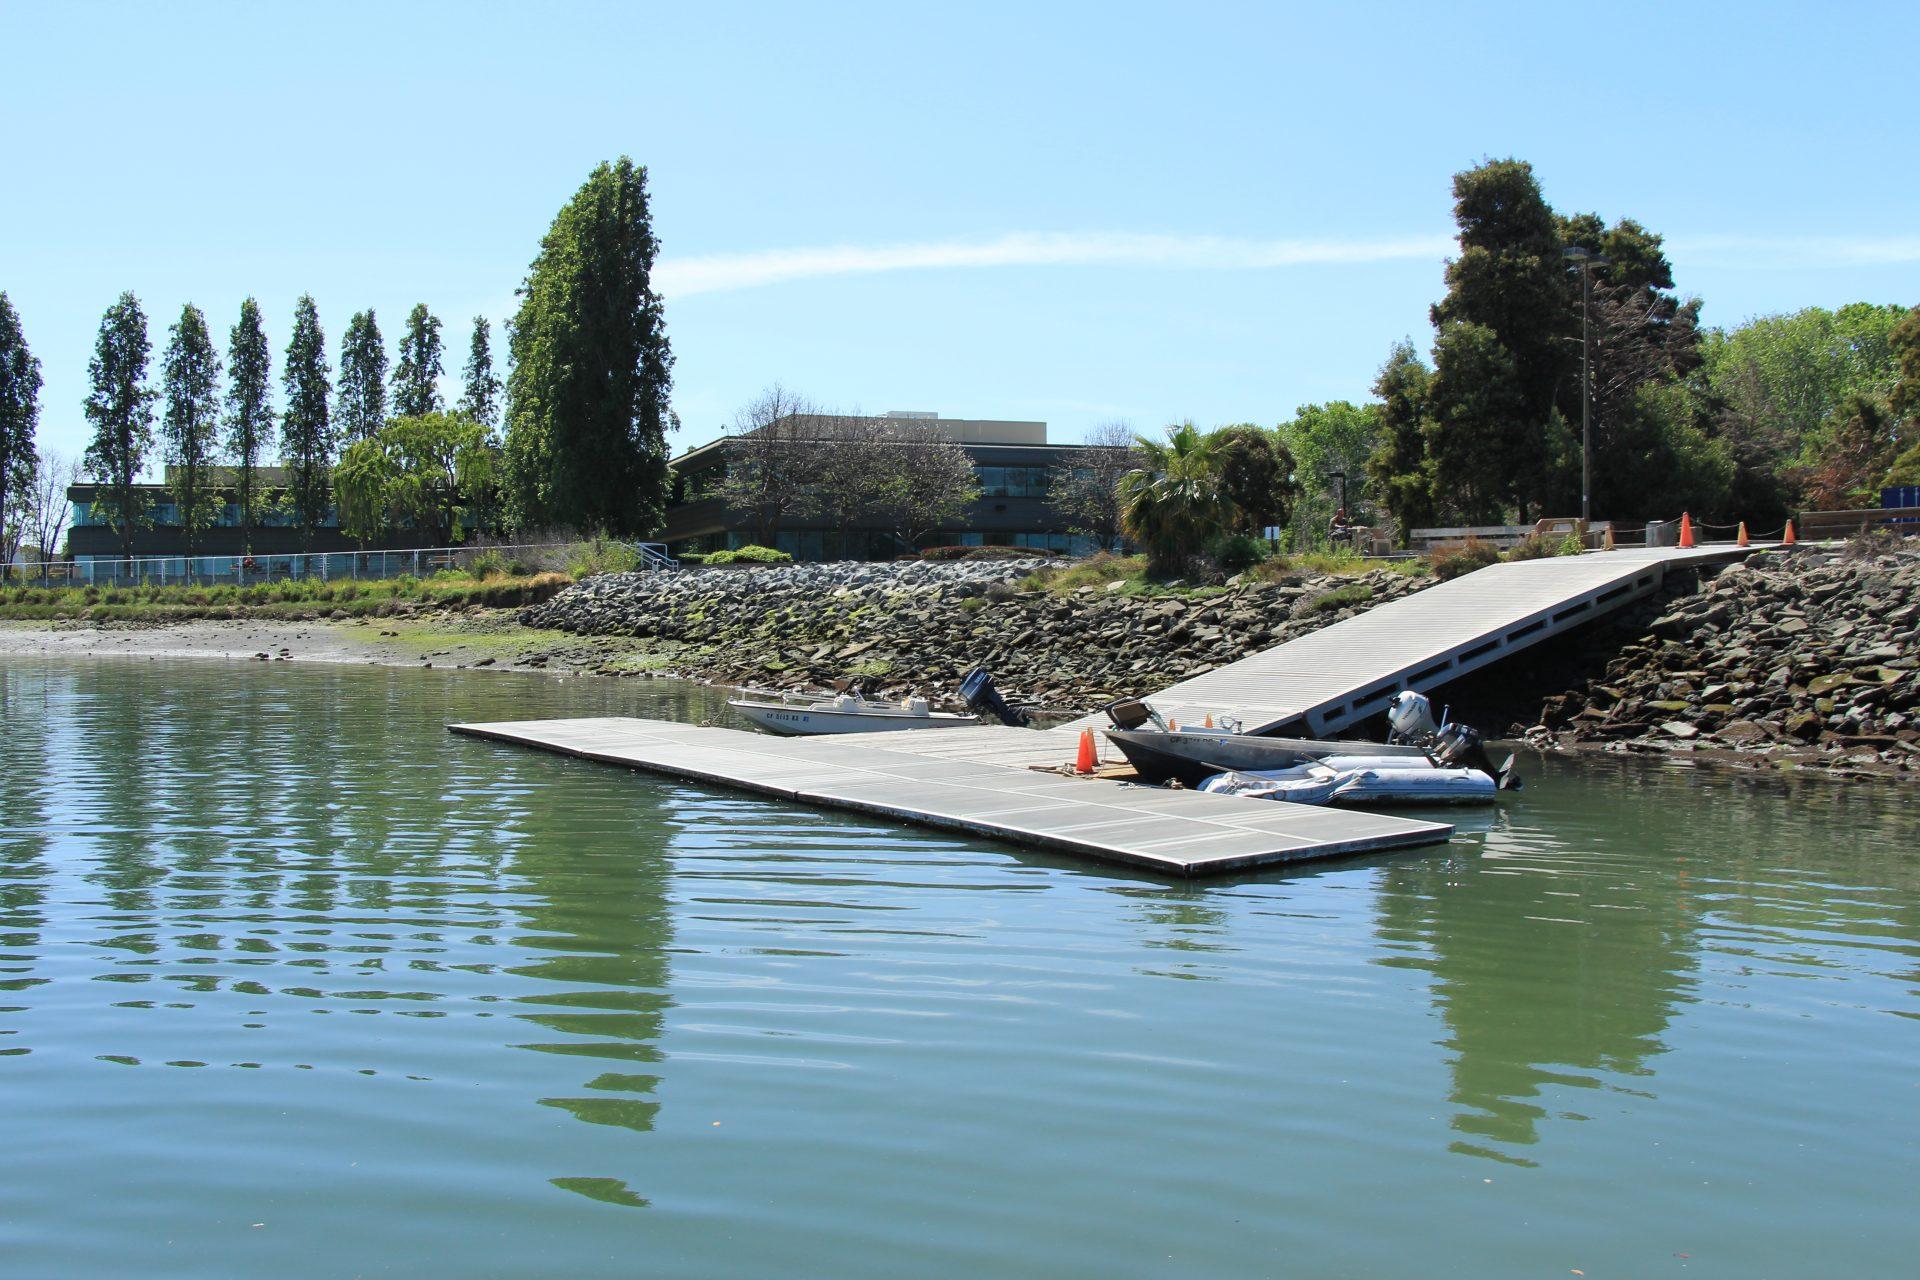 Floating dock with small motorboat, and ramp back up to shore